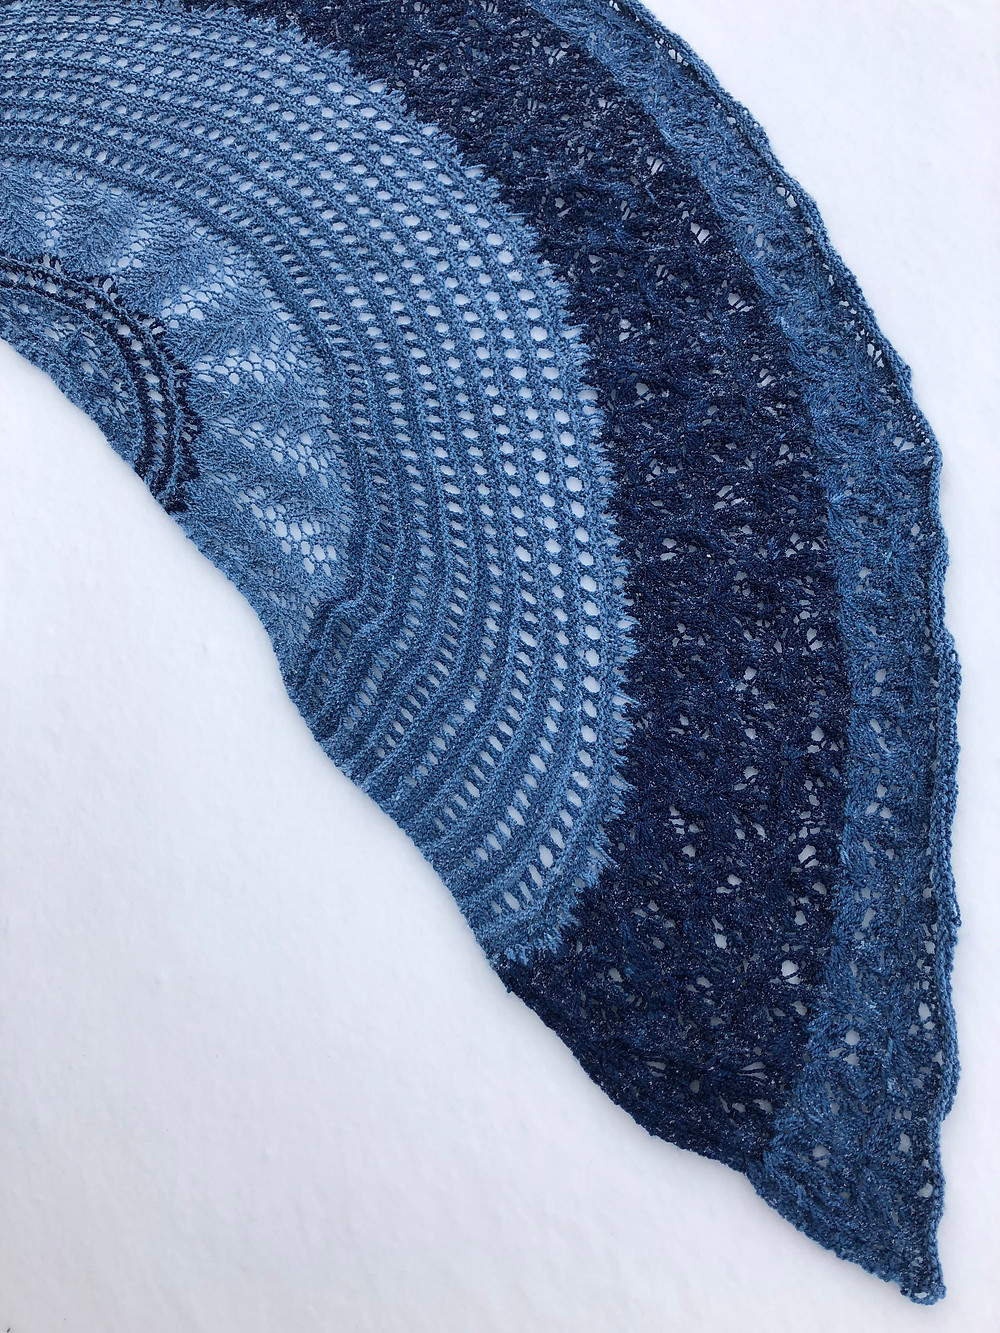 I Guess That's Why... Shawl knitting pattern is now available for purchase!